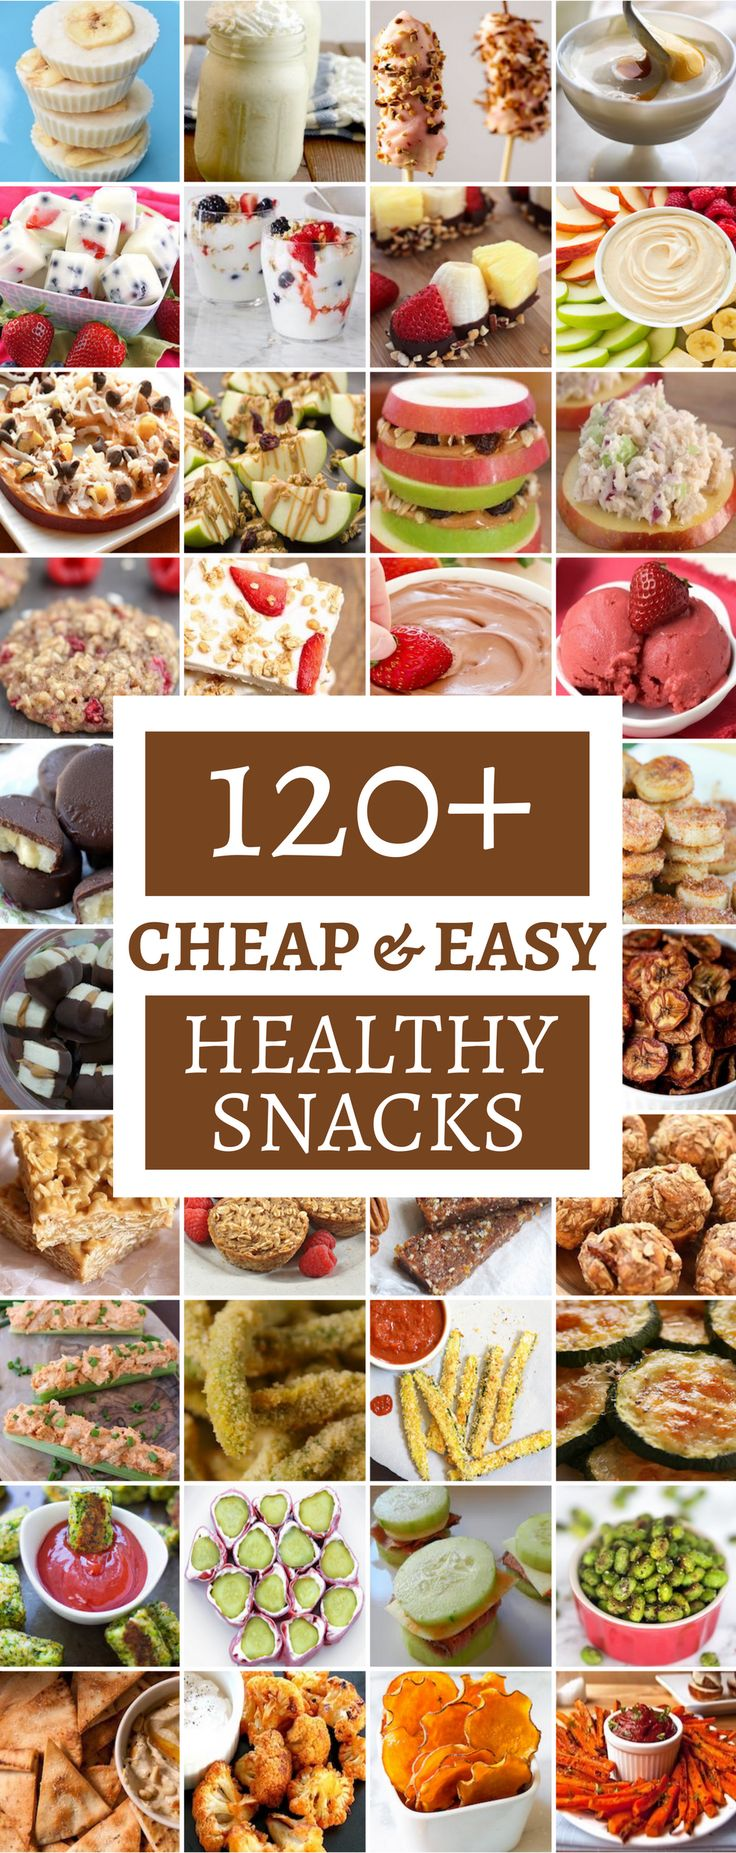 Easy n quick recipes for snacks